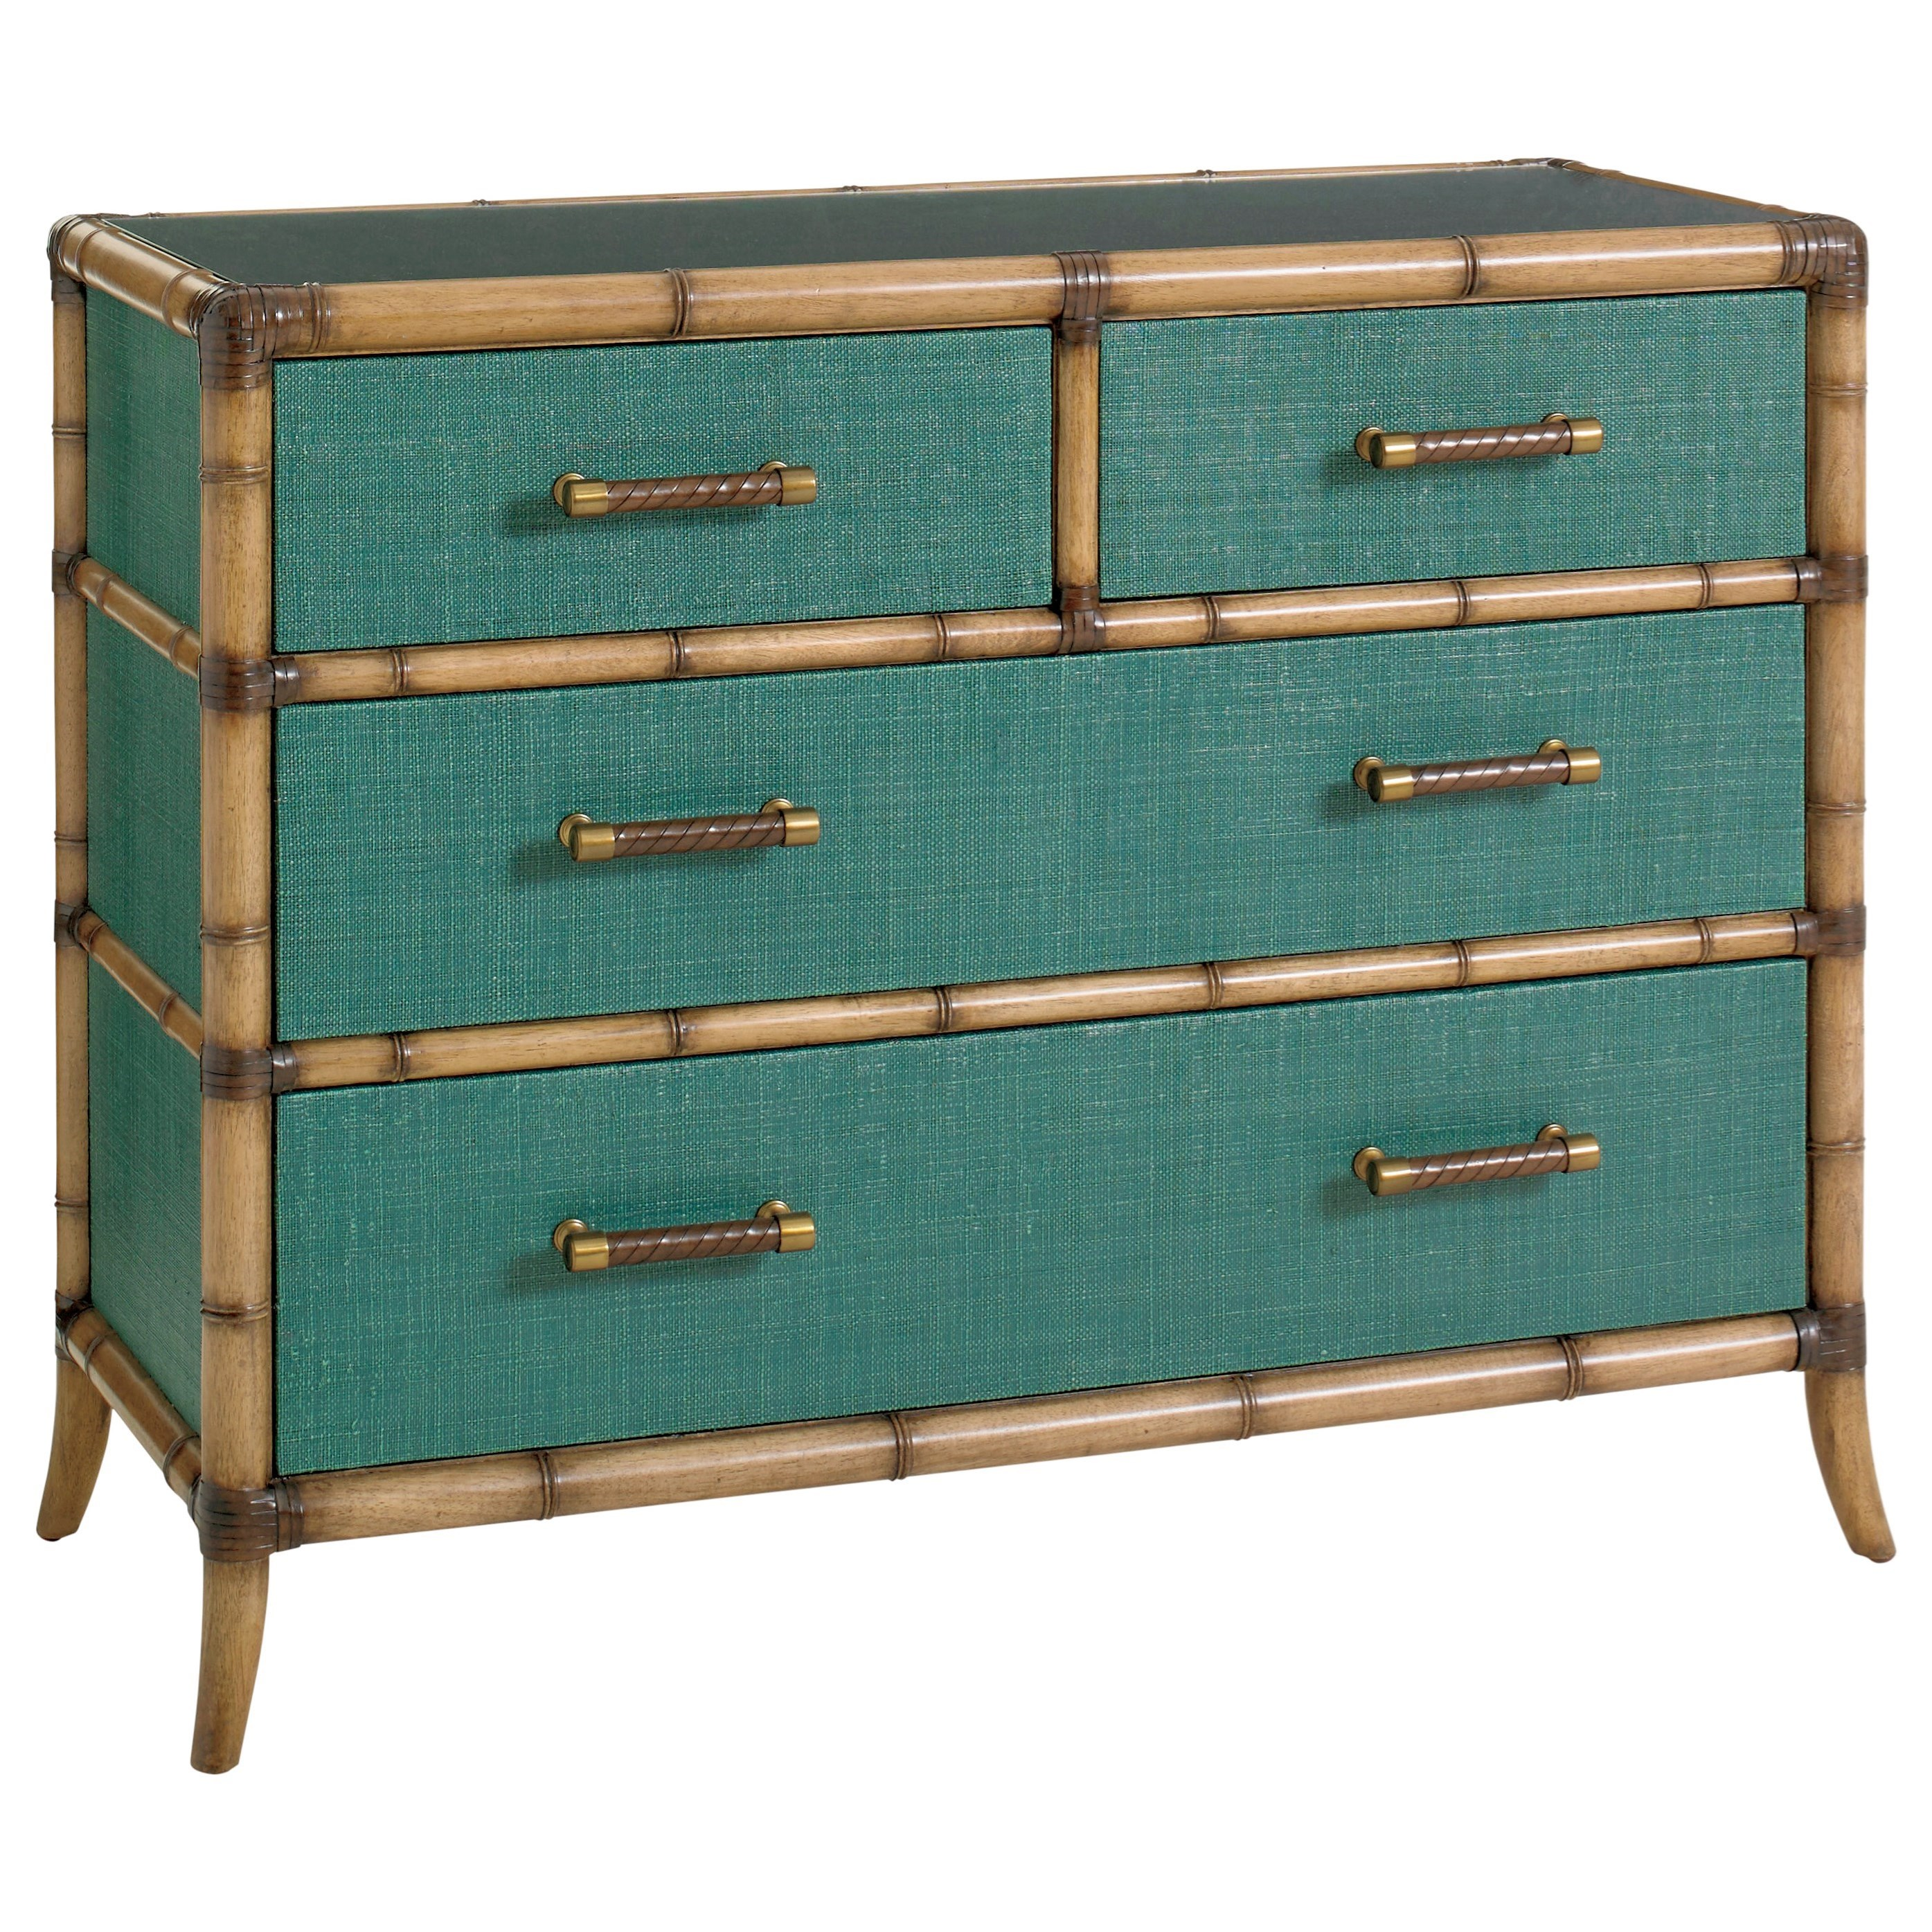 Tommy Bahama Home Twin Palms_Teal Accent Chest - Item Number: 560-624